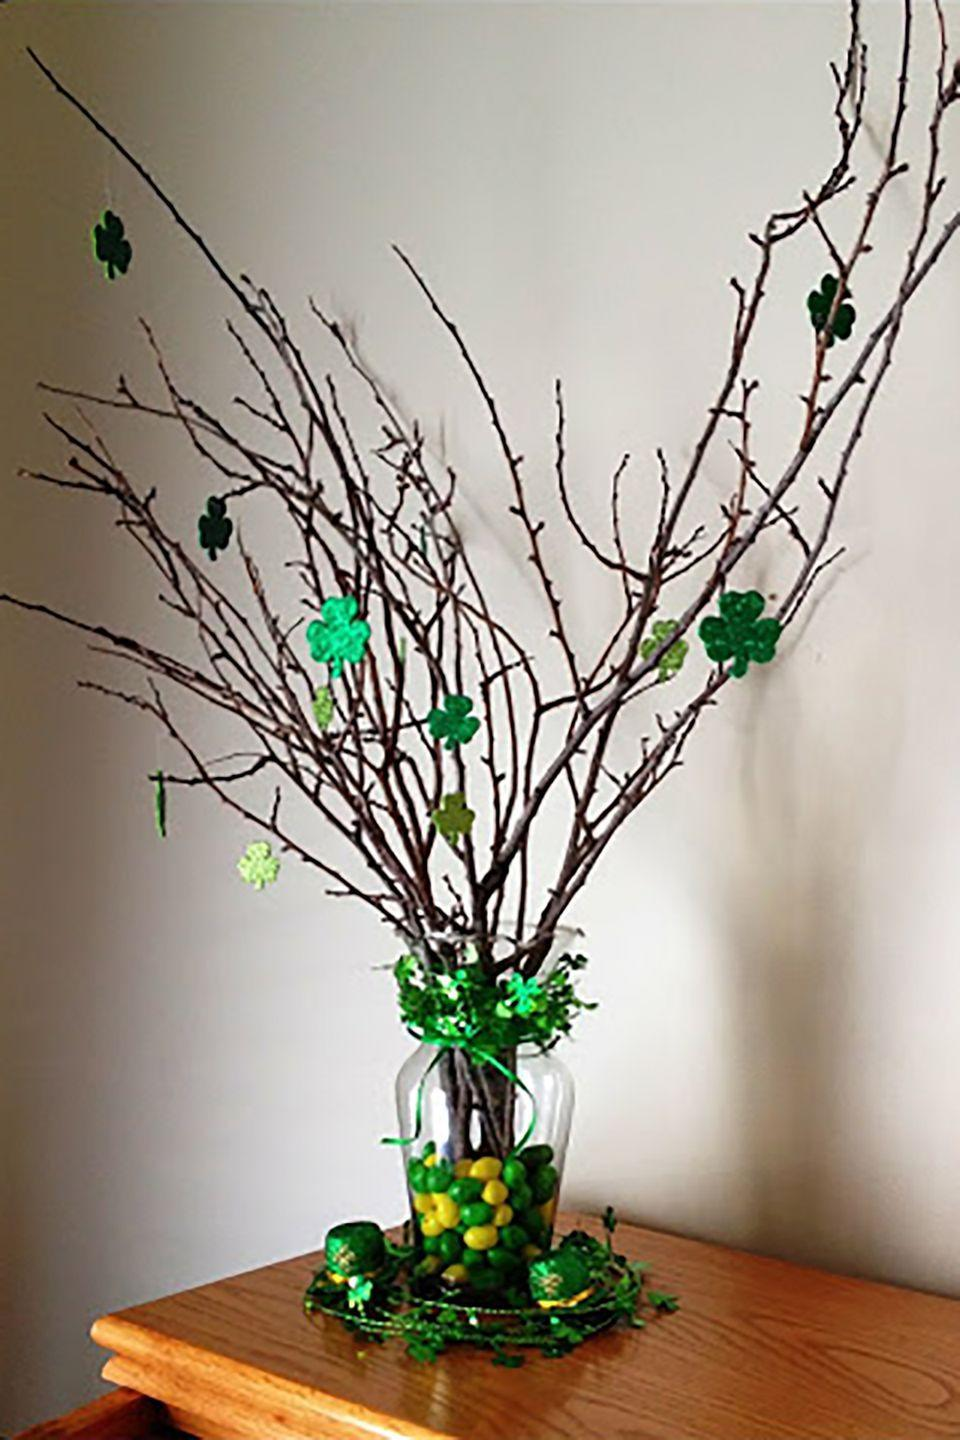 """<p>With some green and yellow jelly beans, glittery shamrocks, and twigs from outside, you can make this eye-catching decoration.</p><p><strong>Get the tutorial at <a href=""""http://itsmylifestorm.blogspot.com/2012/03/st-patricks-day-vase-deco.html"""" rel=""""nofollow noopener"""" target=""""_blank"""" data-ylk=""""slk:It's My Life, Storm"""" class=""""link rapid-noclick-resp"""">It's My Life, Storm</a>.</strong></p>"""